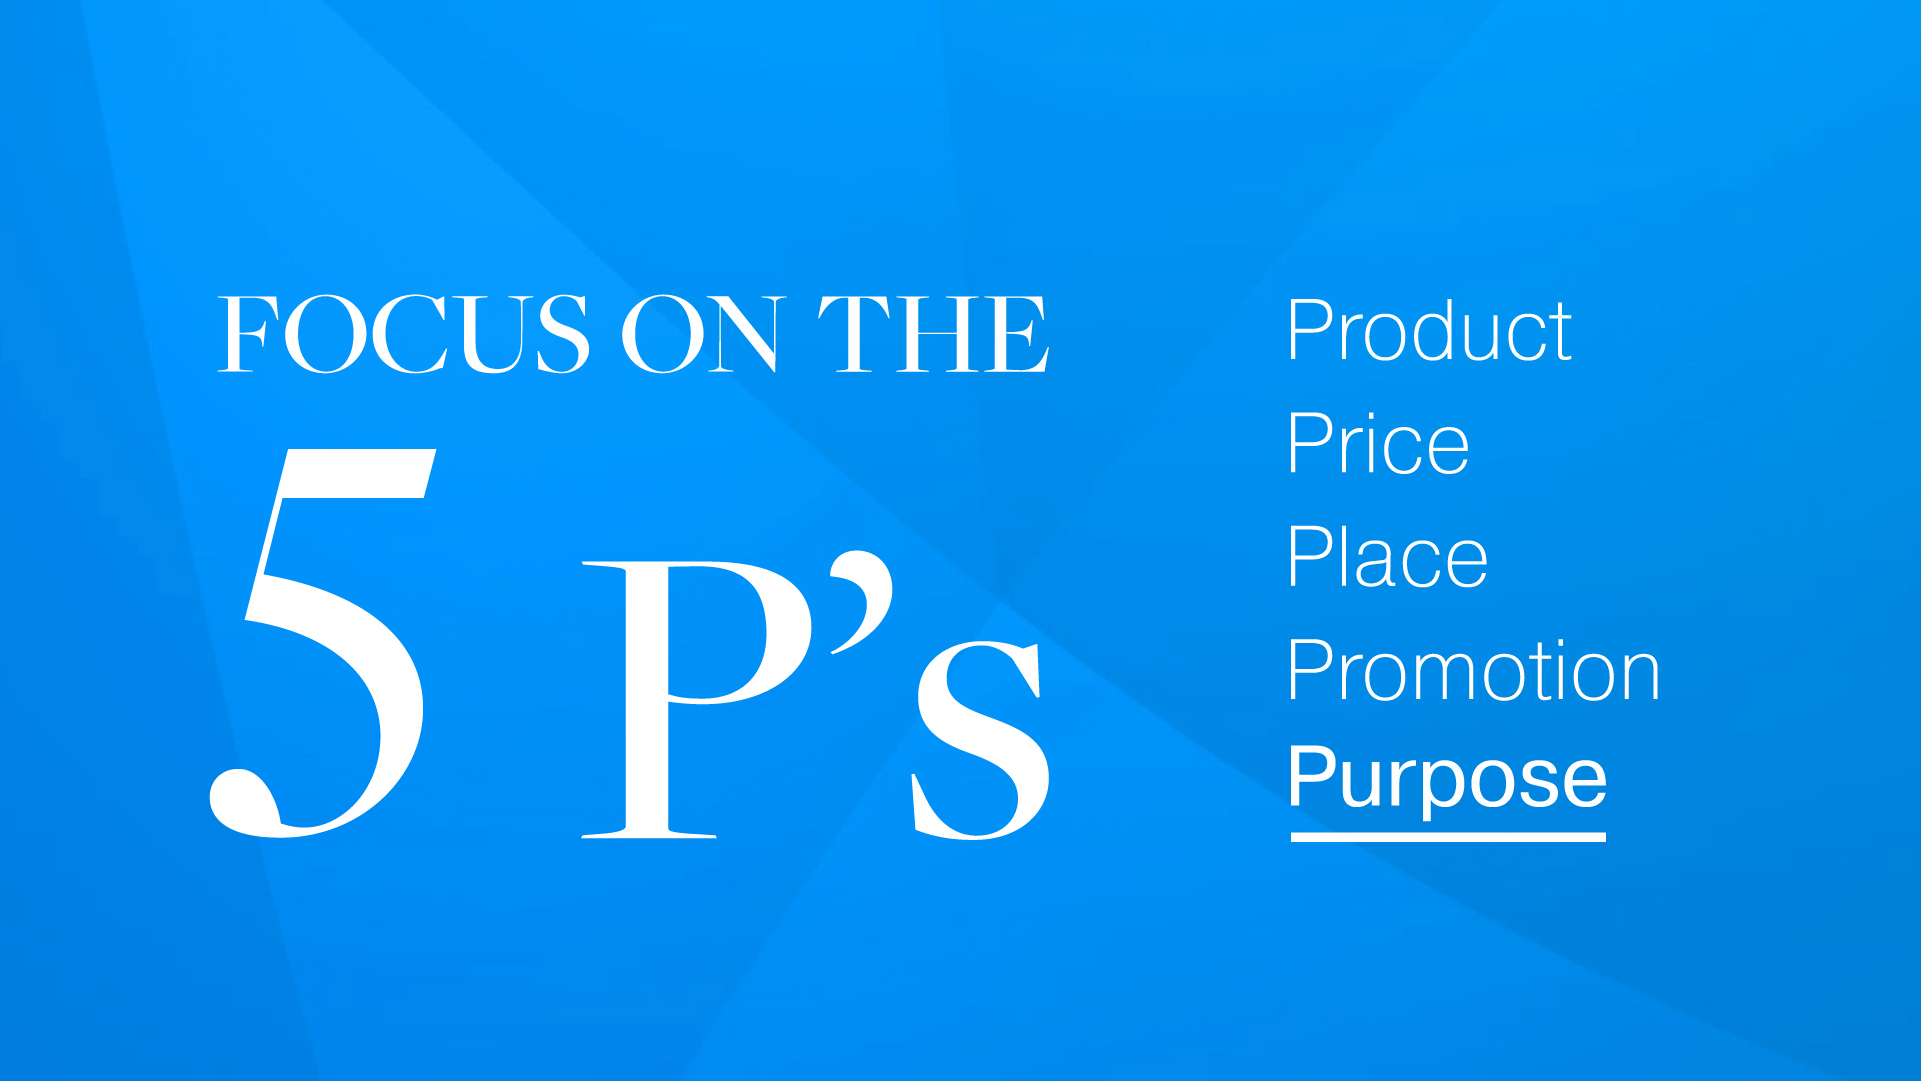 Focus on the 5 P's of Marketing thumbnail